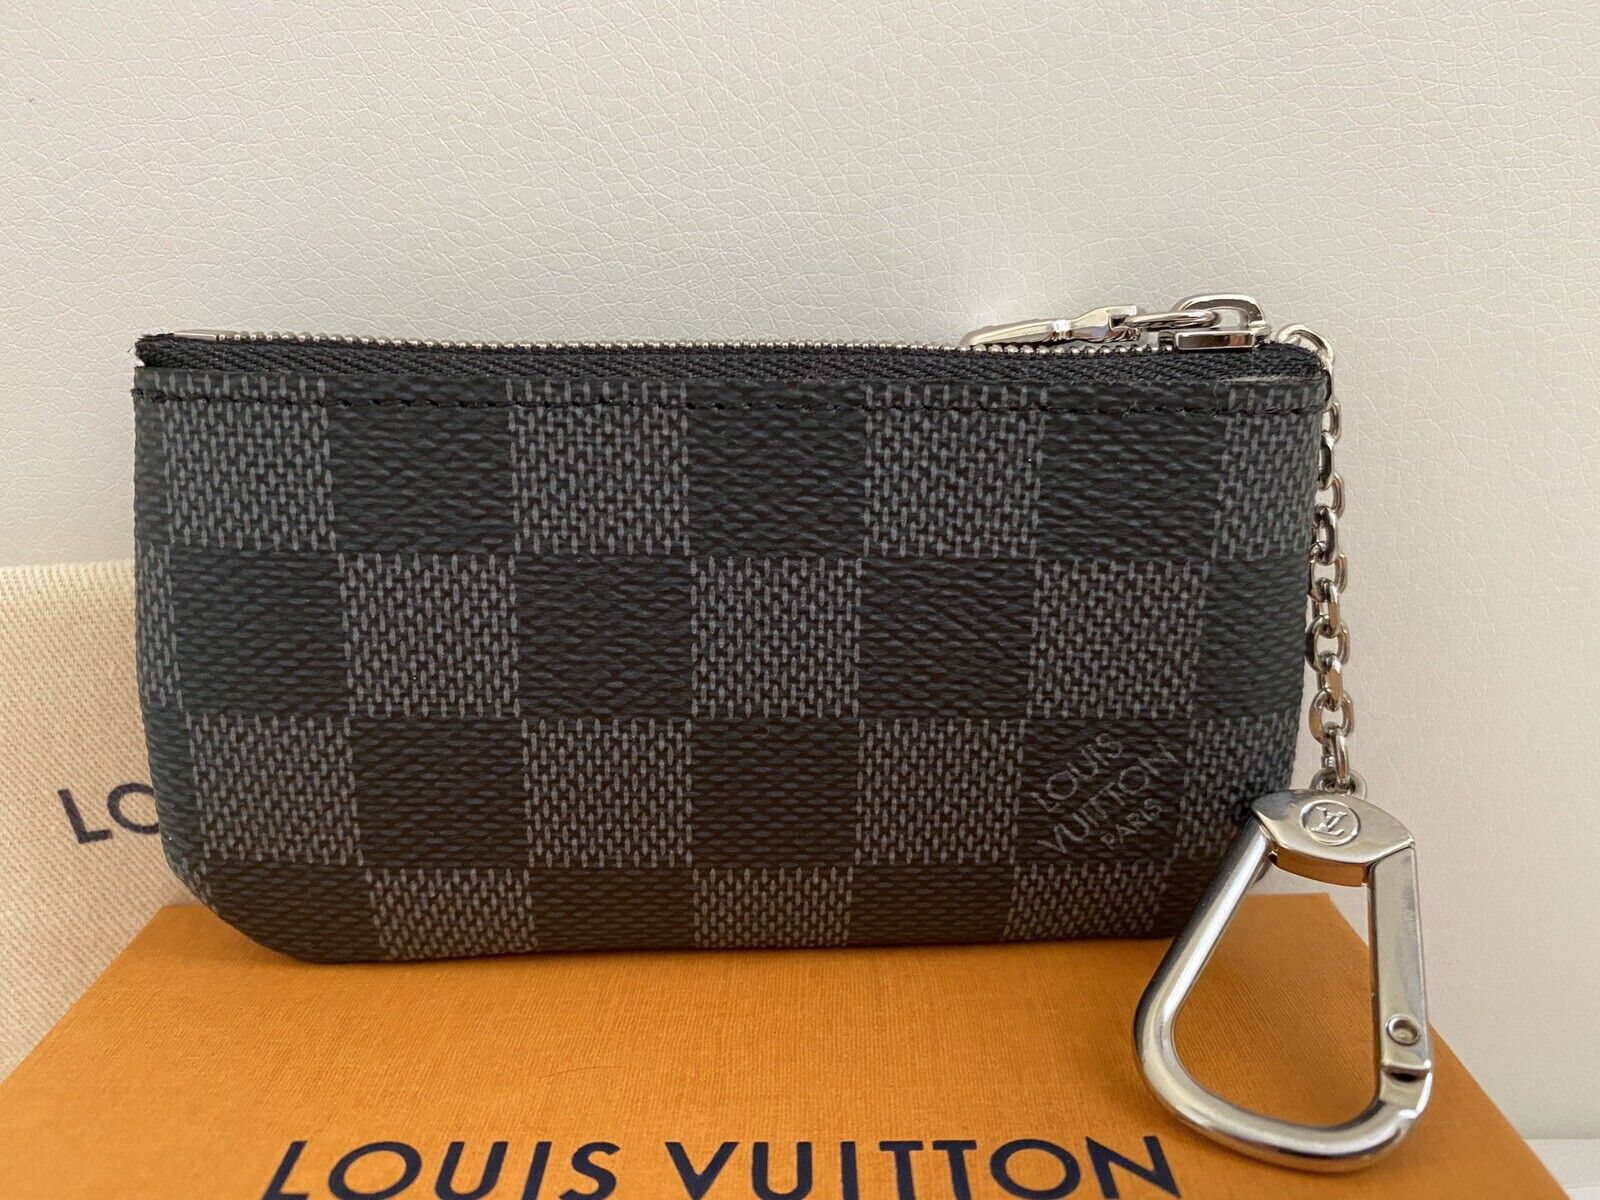 NWT LOUIS VUITTON Damier Graphite Key Cles Coin Purse with everything